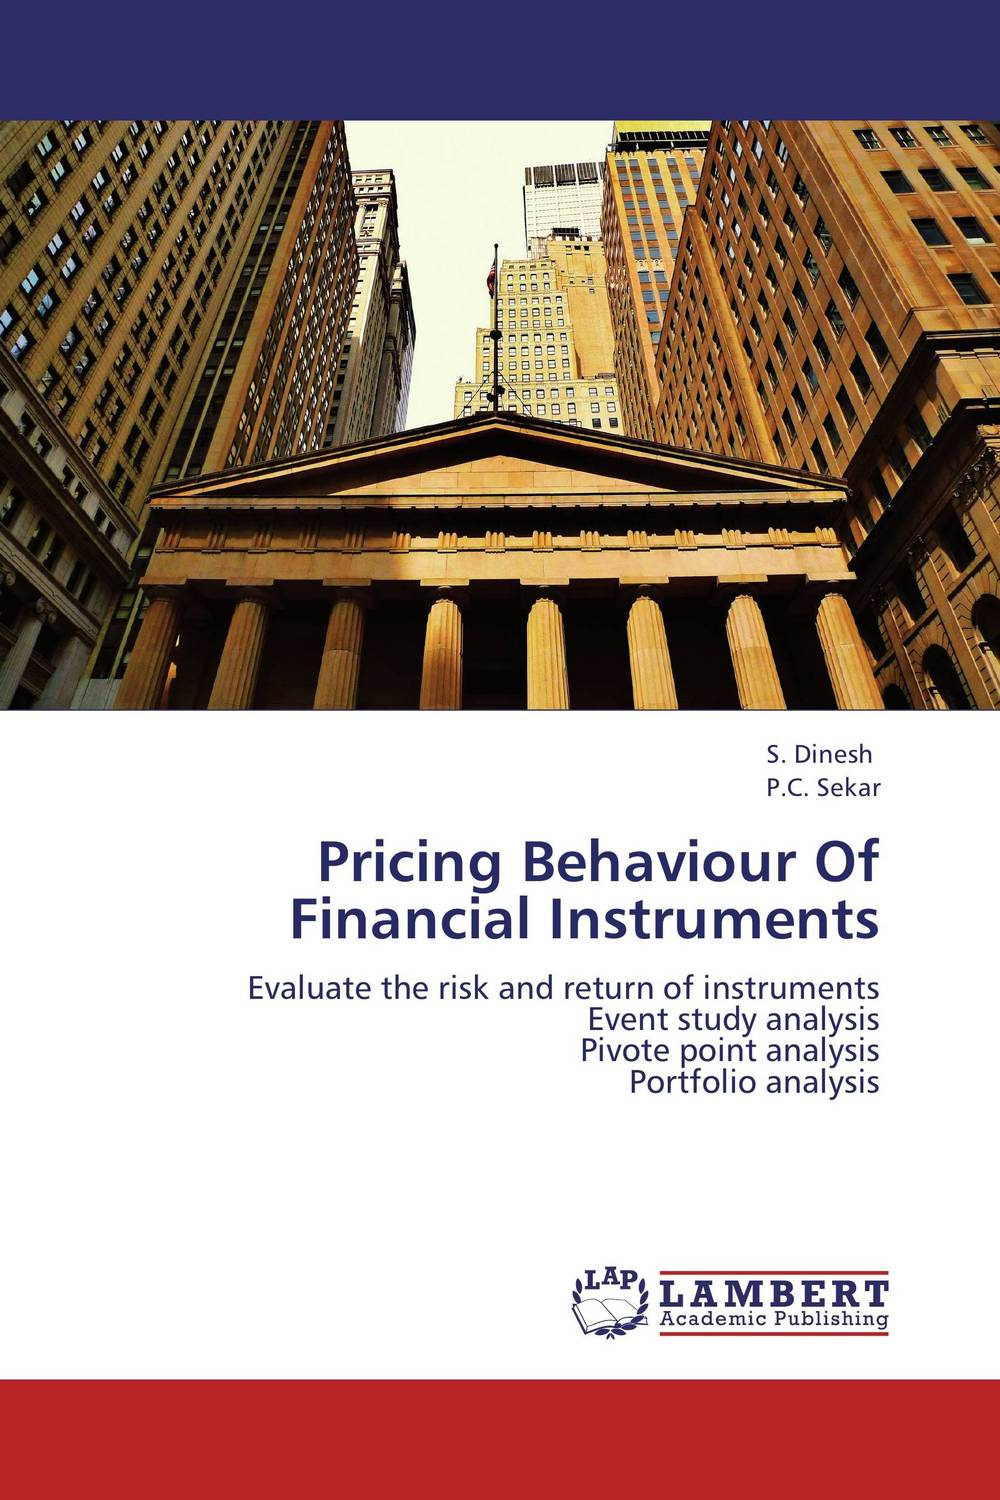 Pricing Behaviour Of Financial Instruments